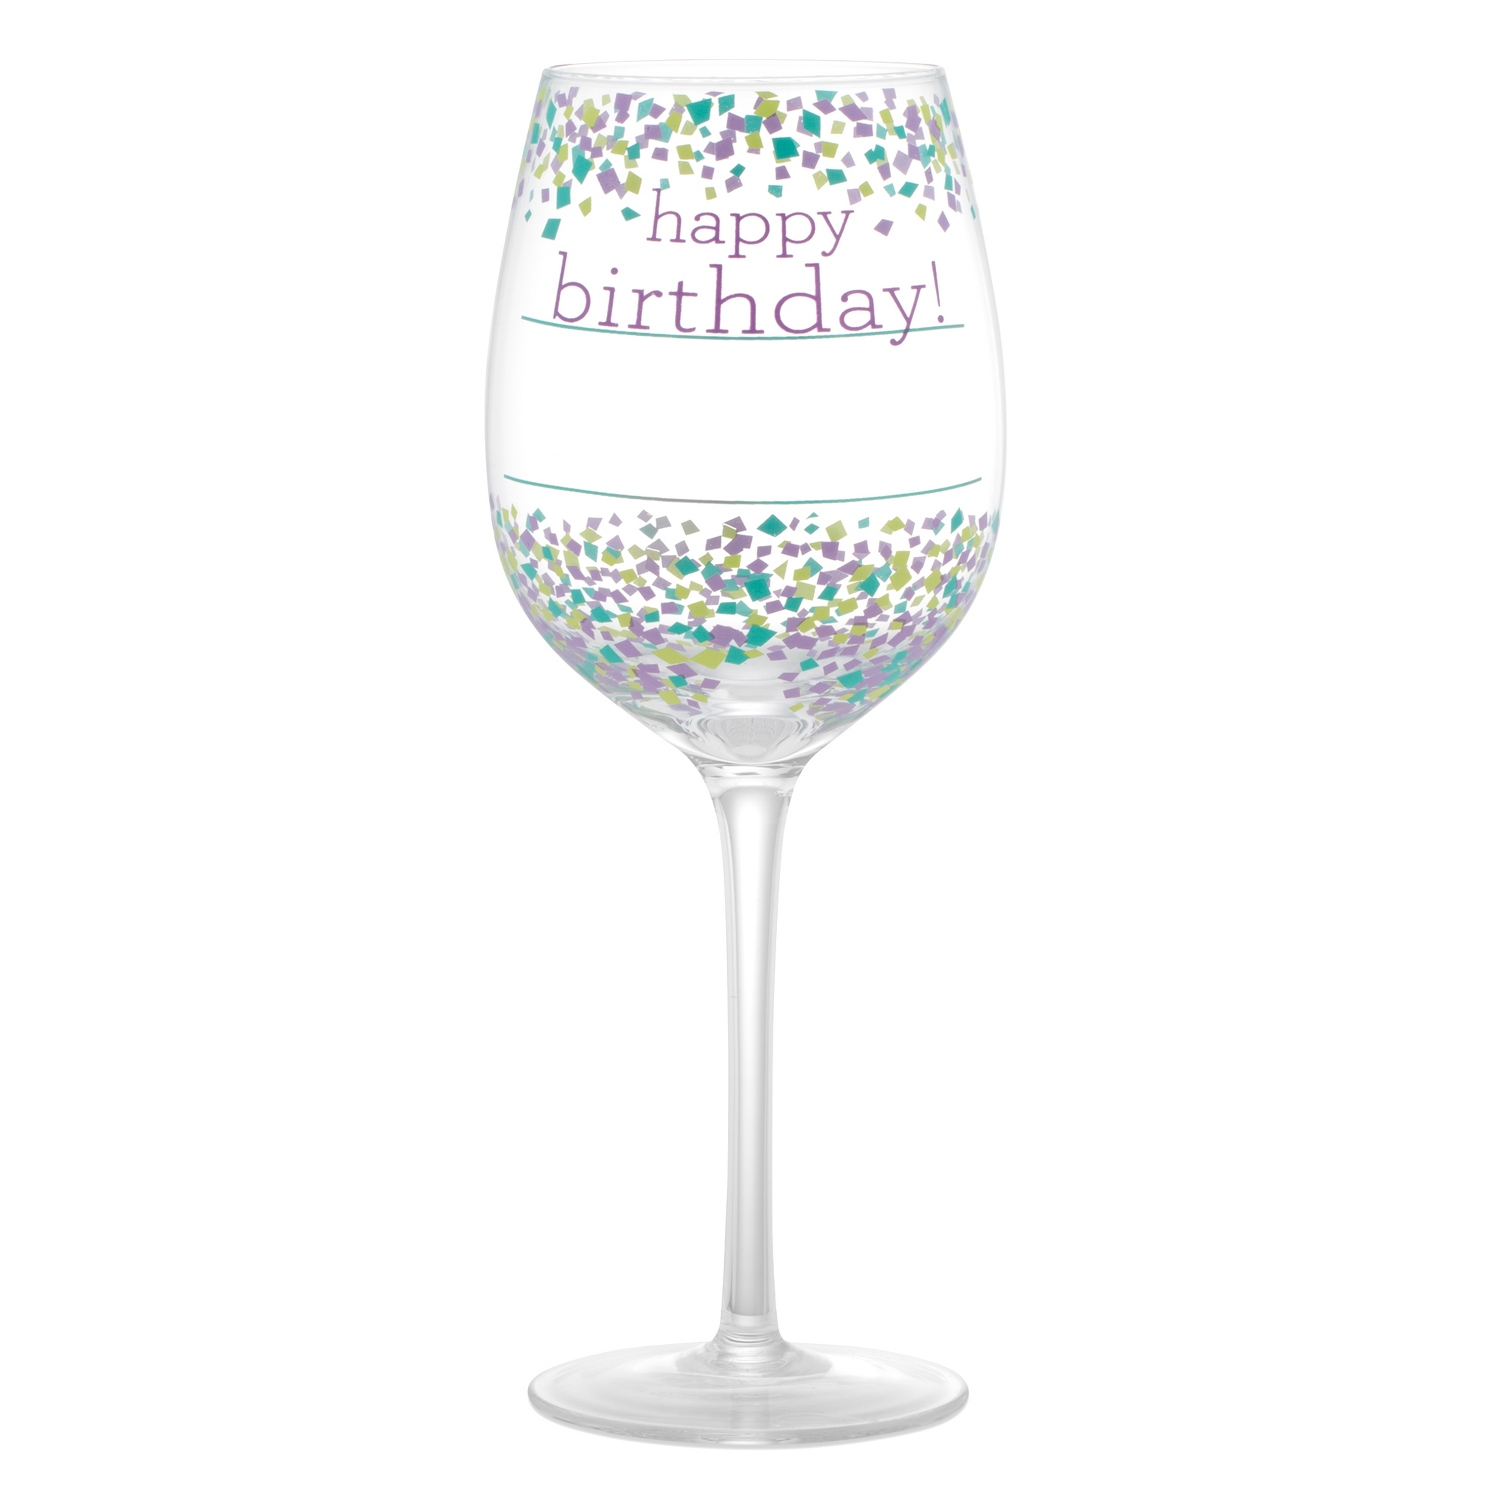 Happy Birthday Confetti Wine Glass